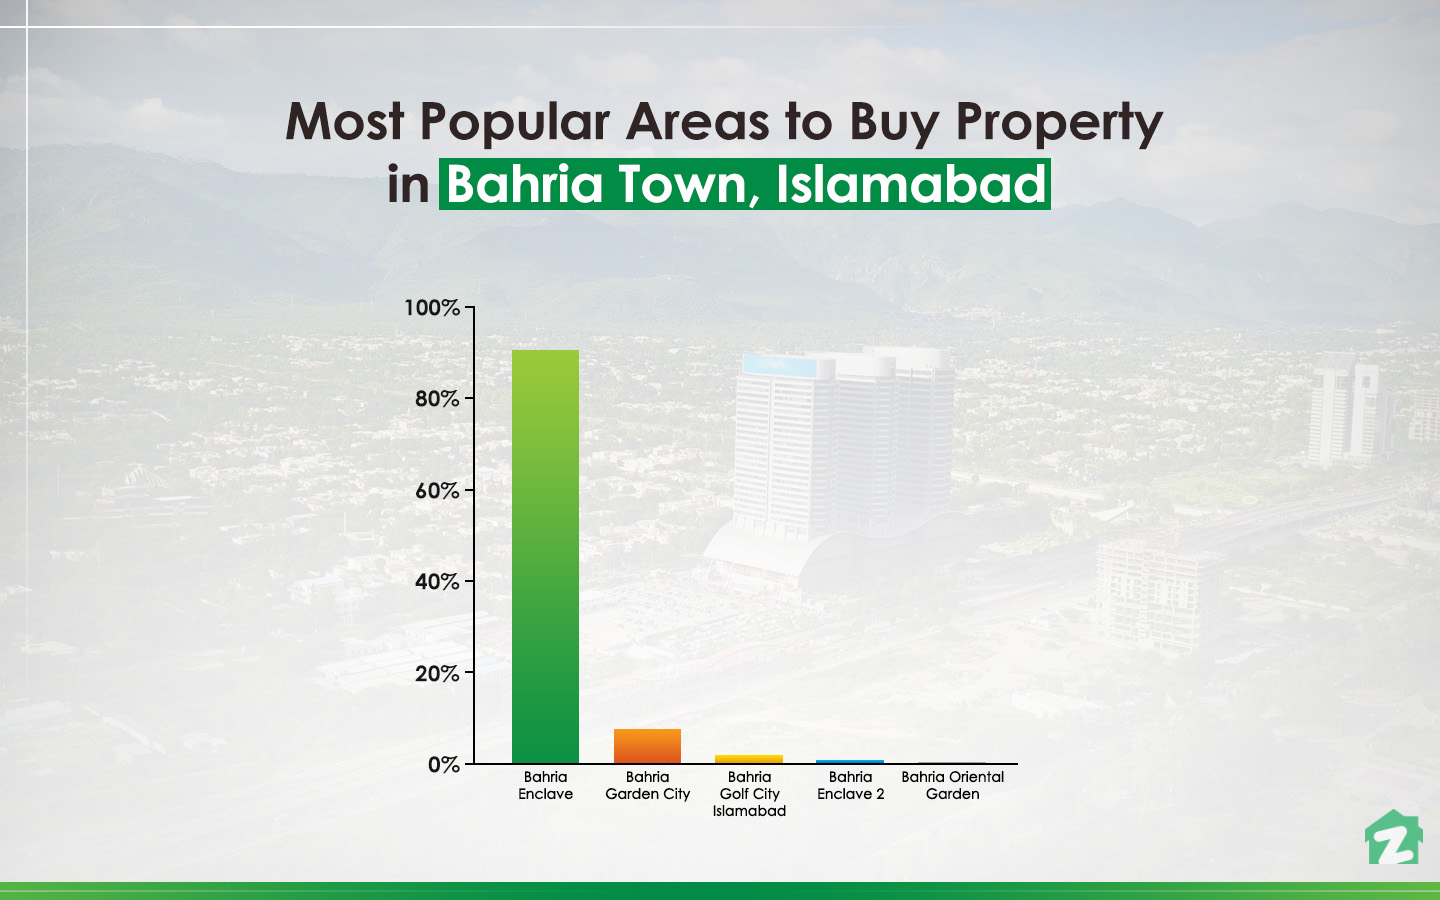 Popular areas for Buying Property in Bahria Town, Islamabad